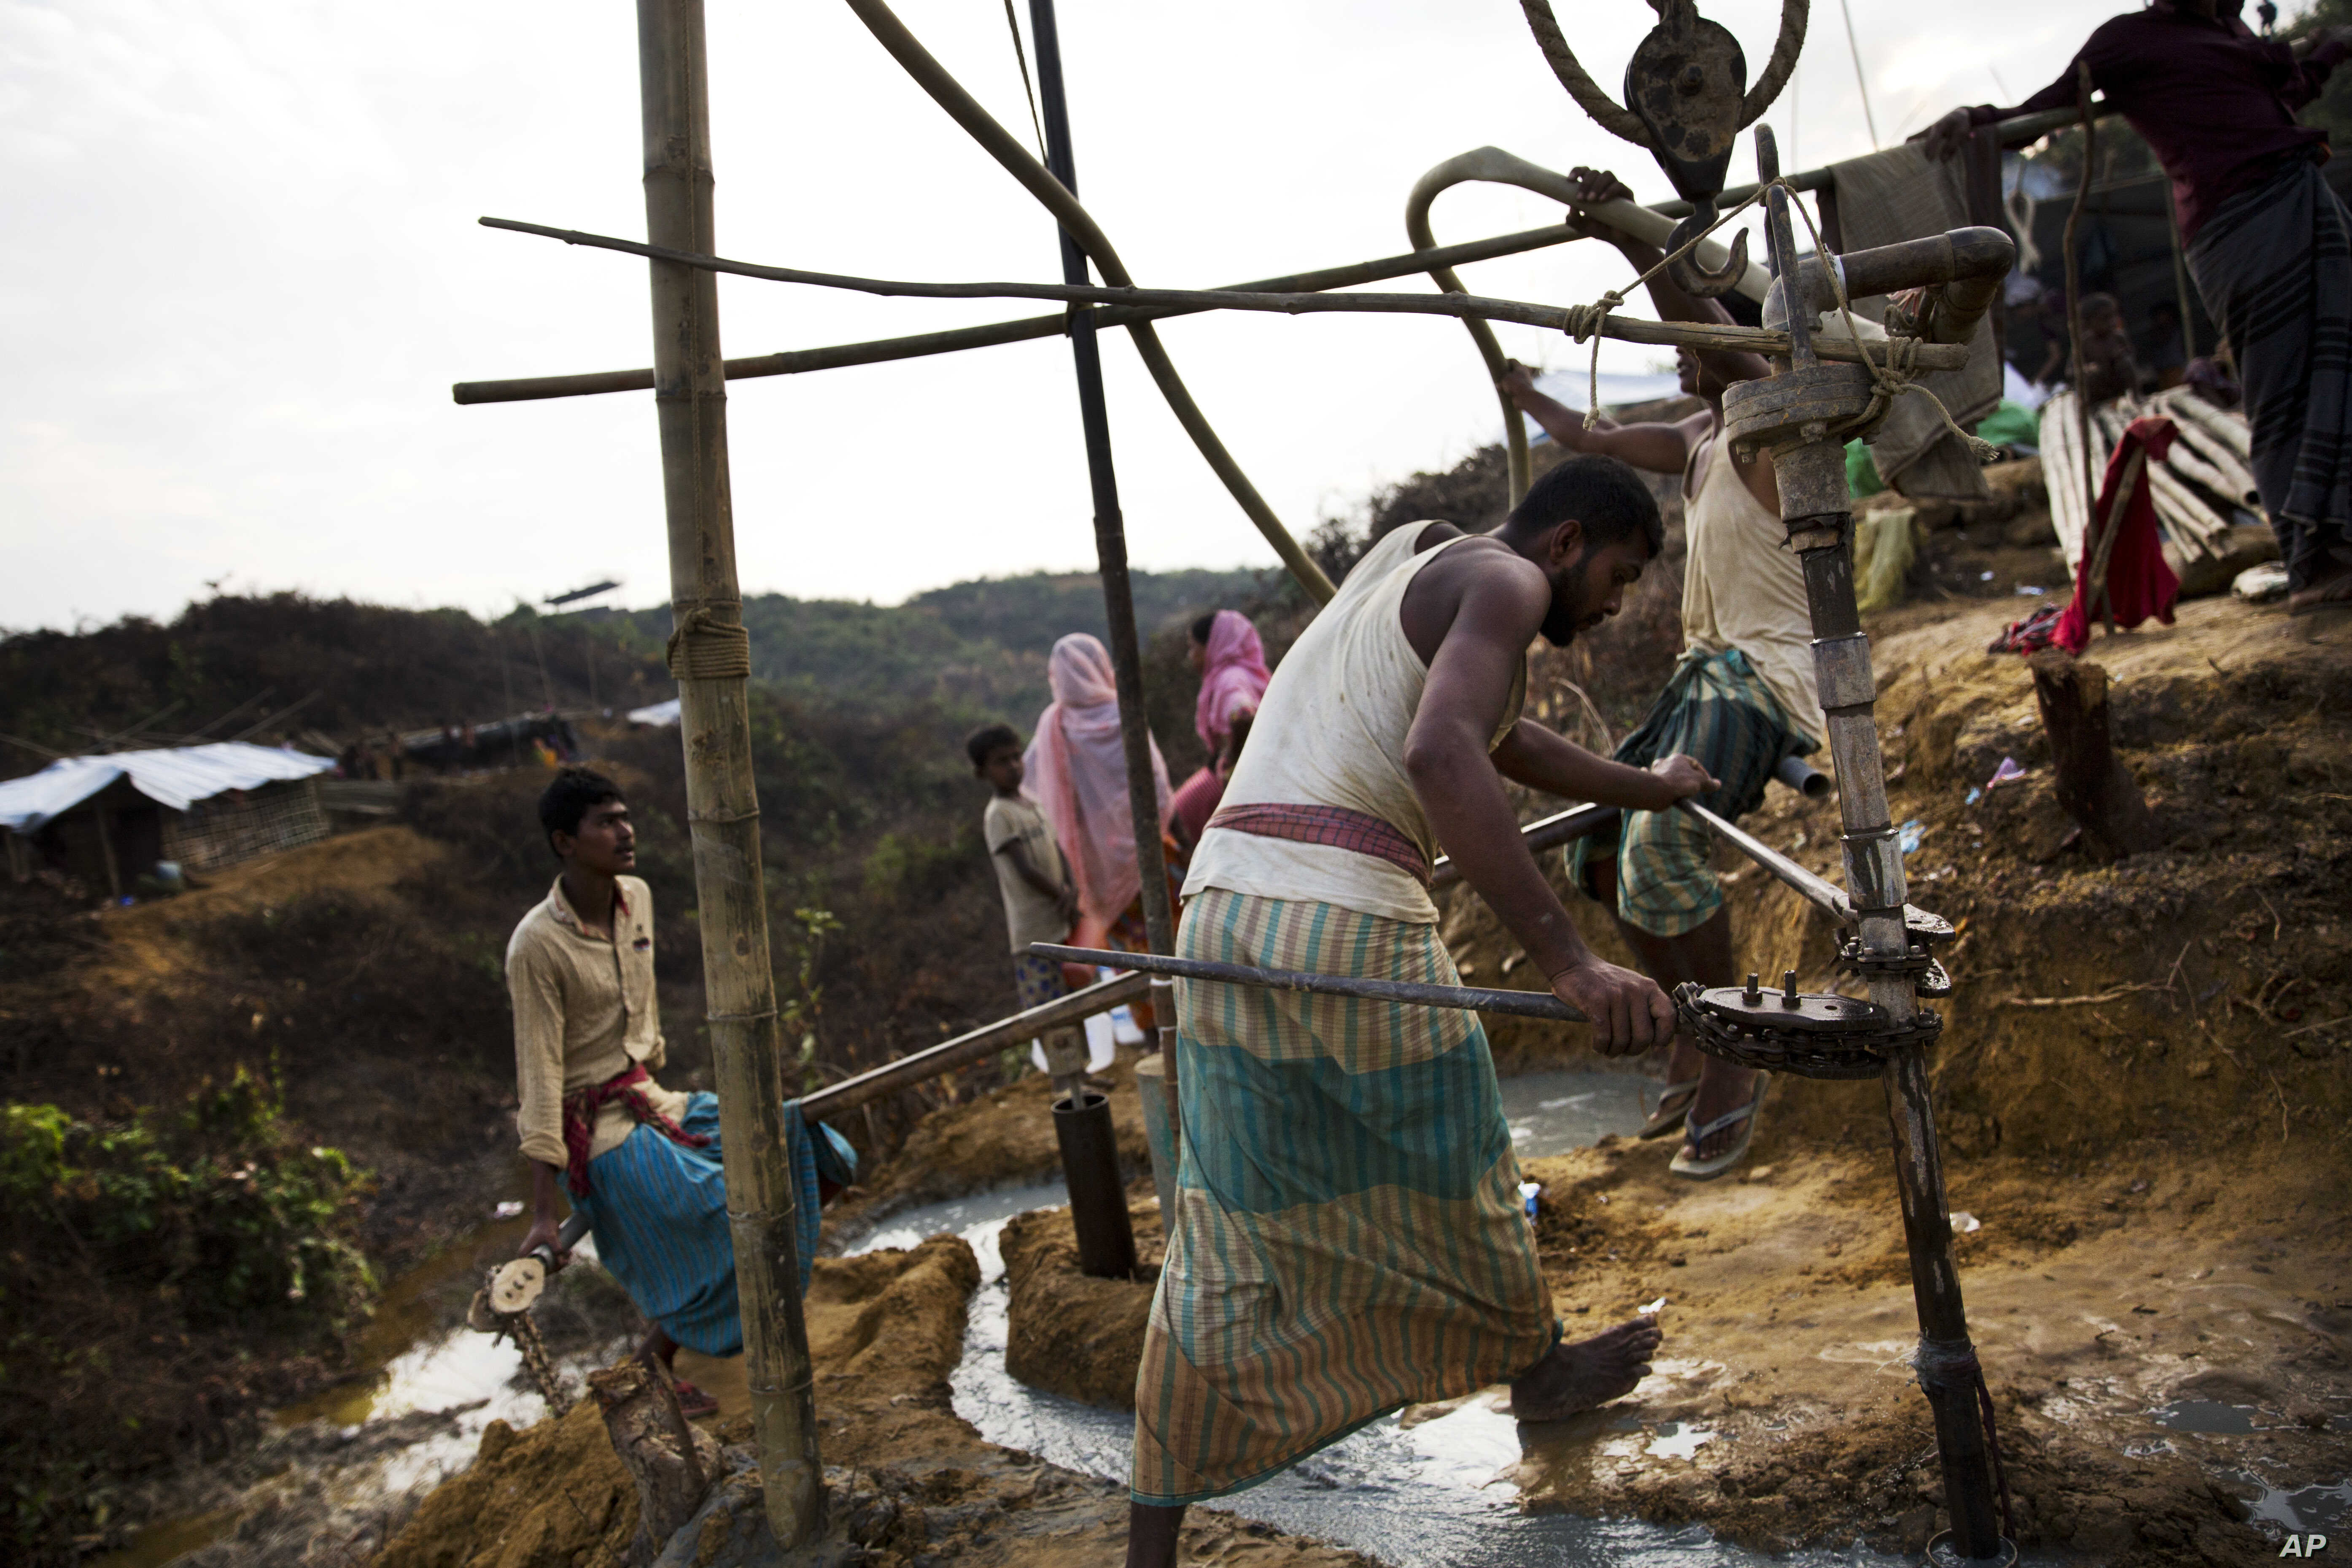 FILE - Bangladeshi laborers build a tube well in a Rohingya refugee camp, in Cox's Bazar, Bangladesh, Oct. 29 2017.